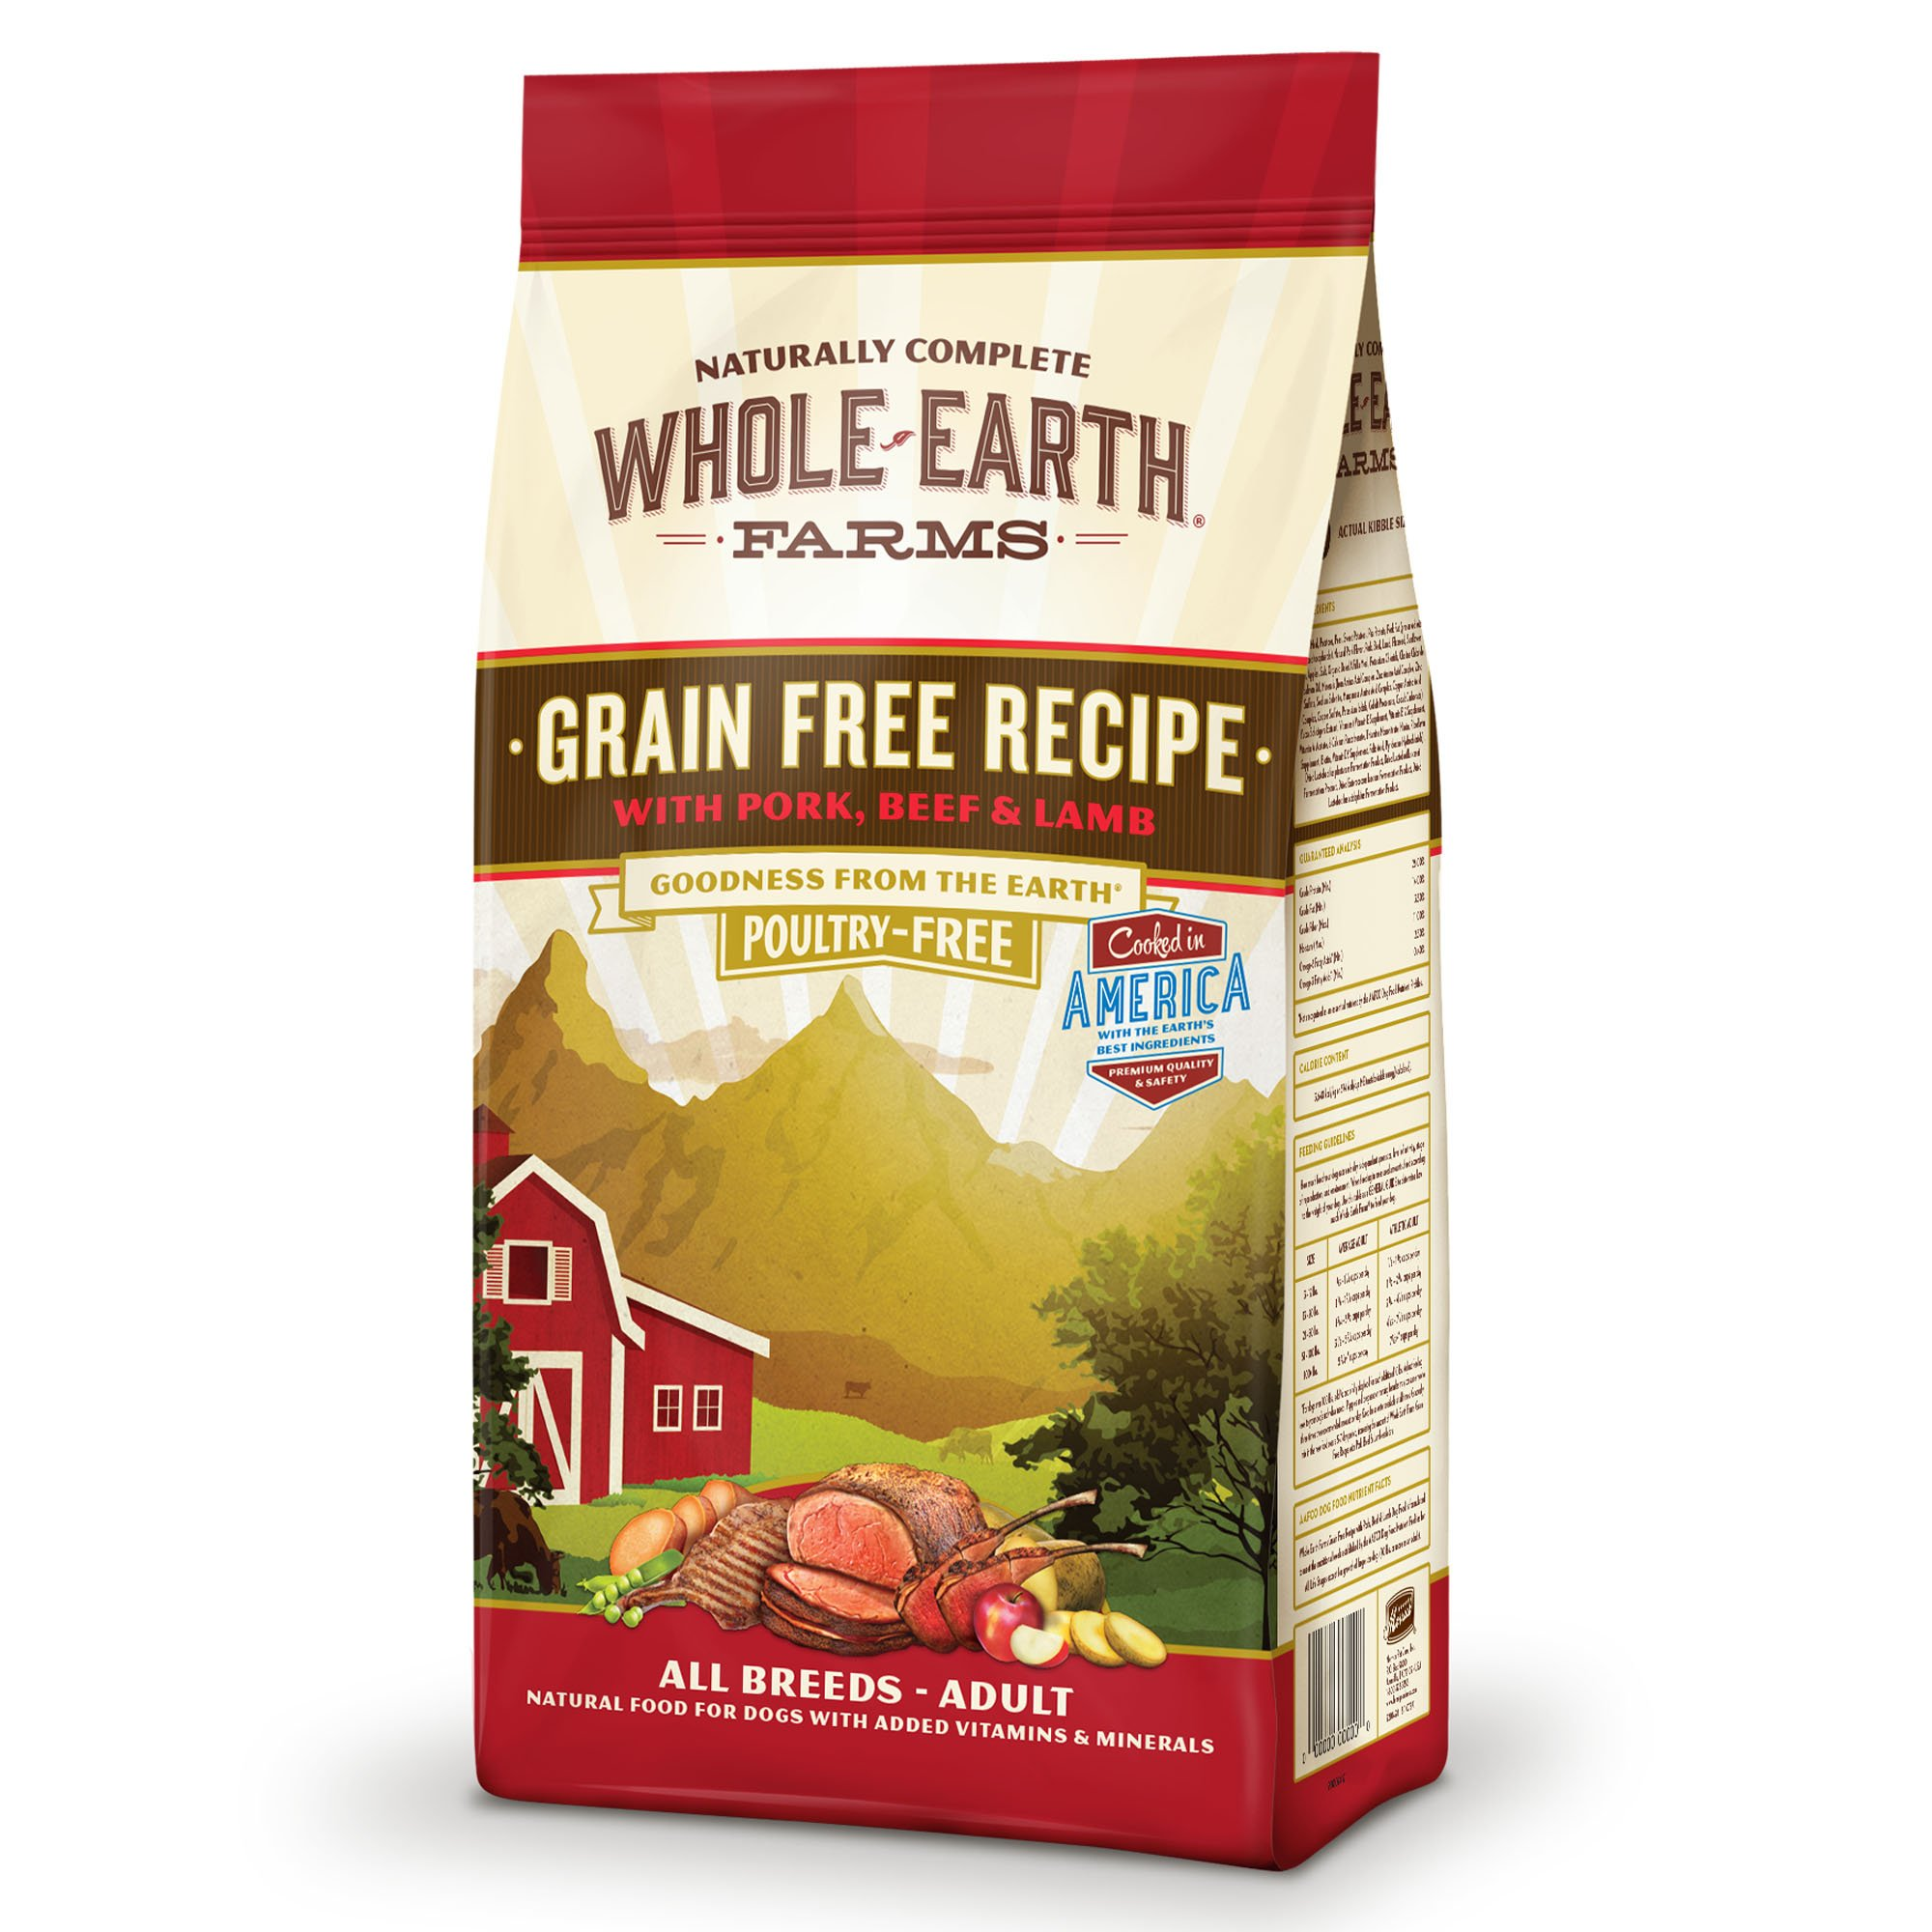 Whole Earth Farms Grain Free Beef & Lamb Dog Food